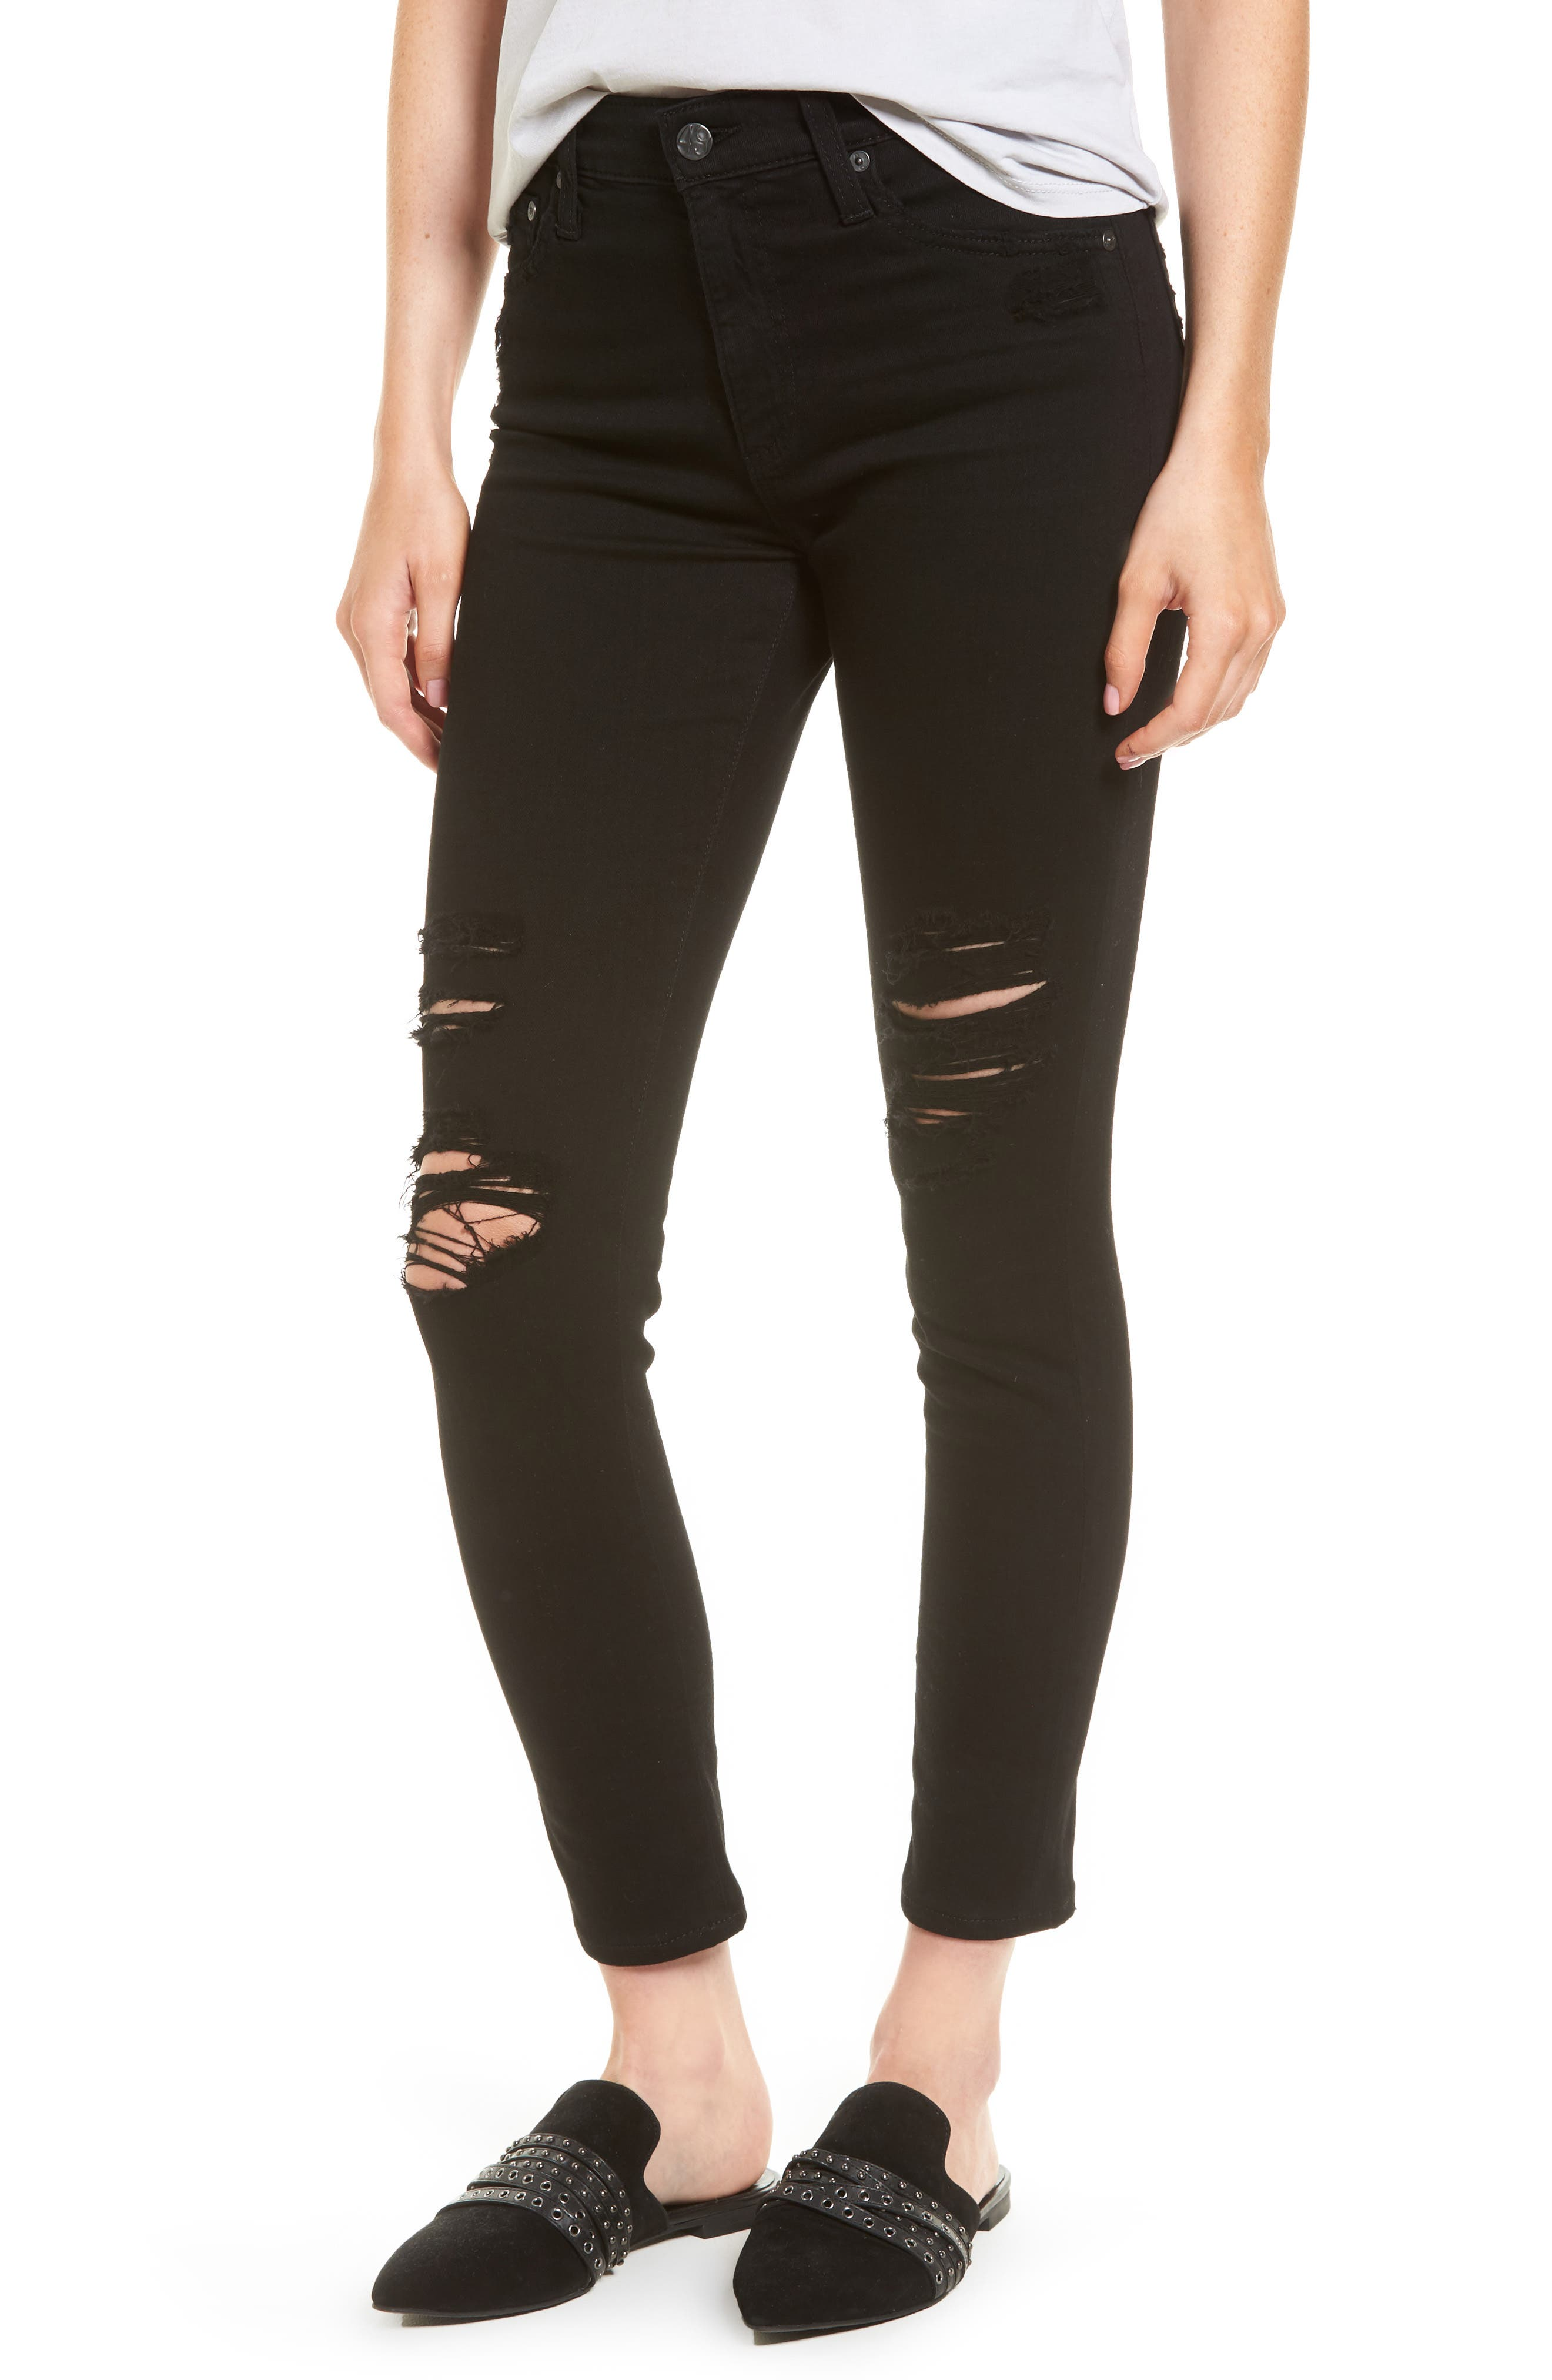 The Farrah High Waist Ankle Skinny Faux Leather Pants,                             Main thumbnail 1, color,                             5 Years Black Destructed